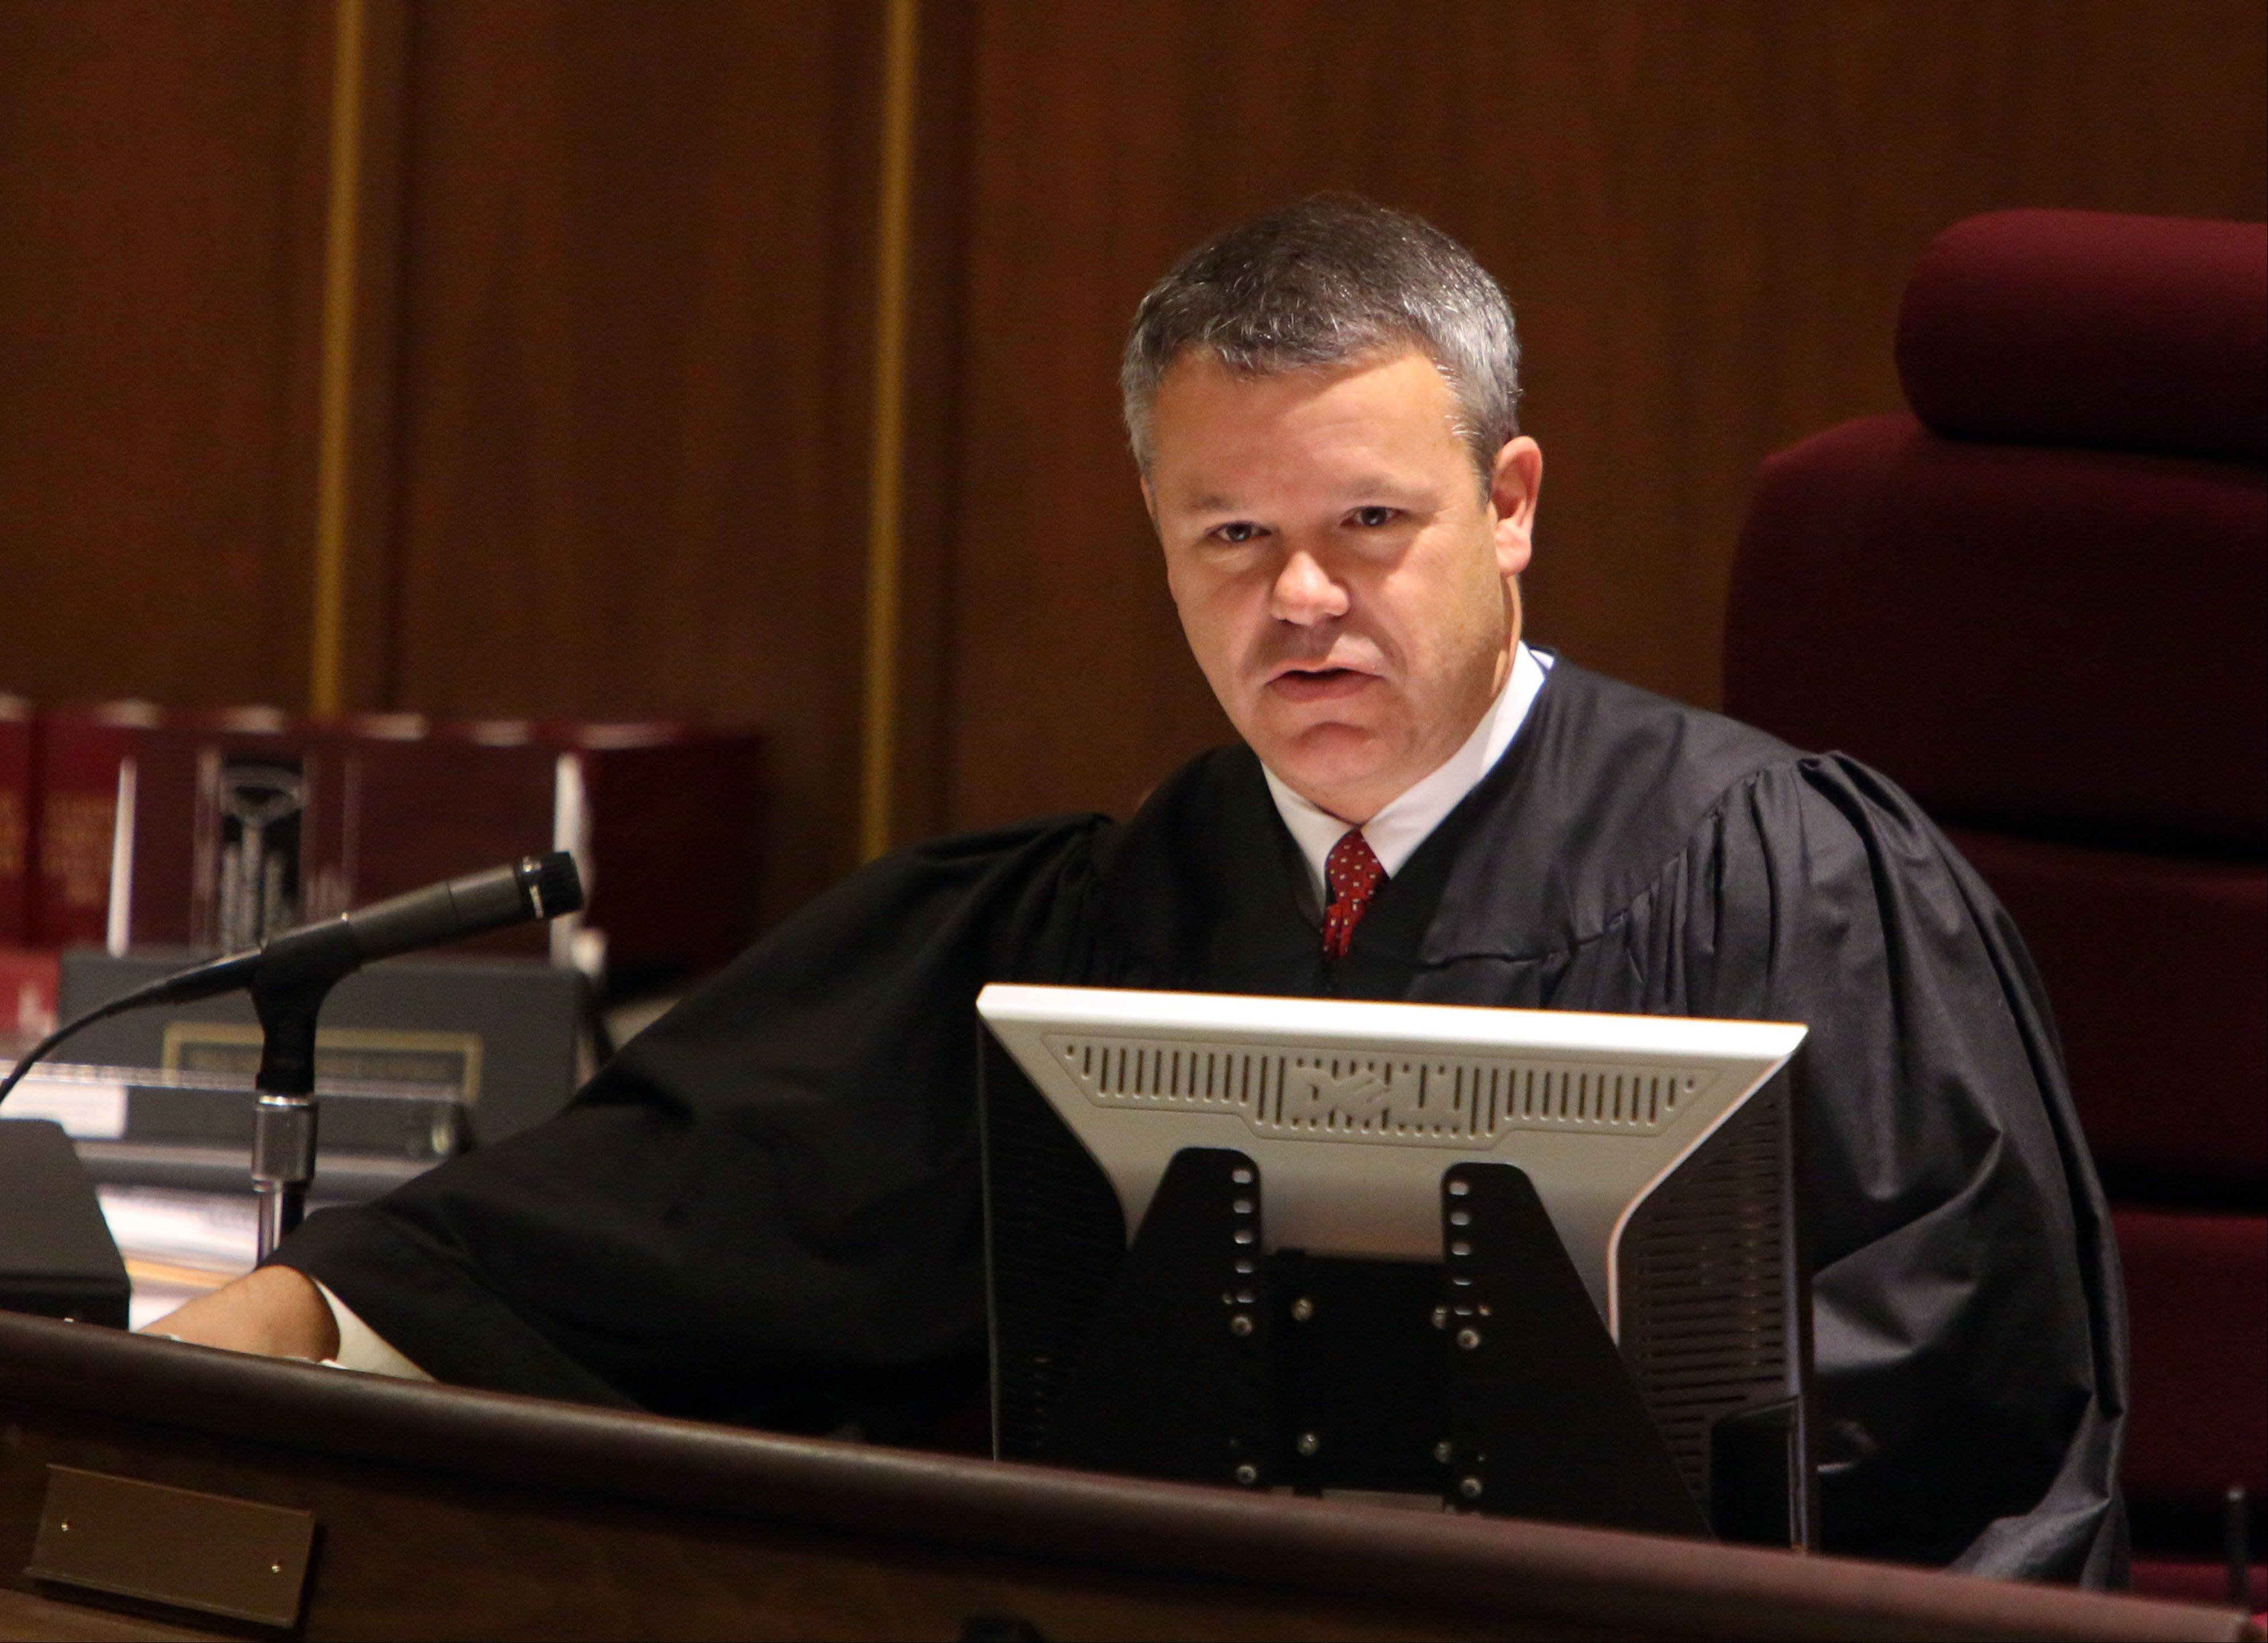 Kane County Judge Clinton Hull conducts court during the sentencing hearing for David Hatyina.